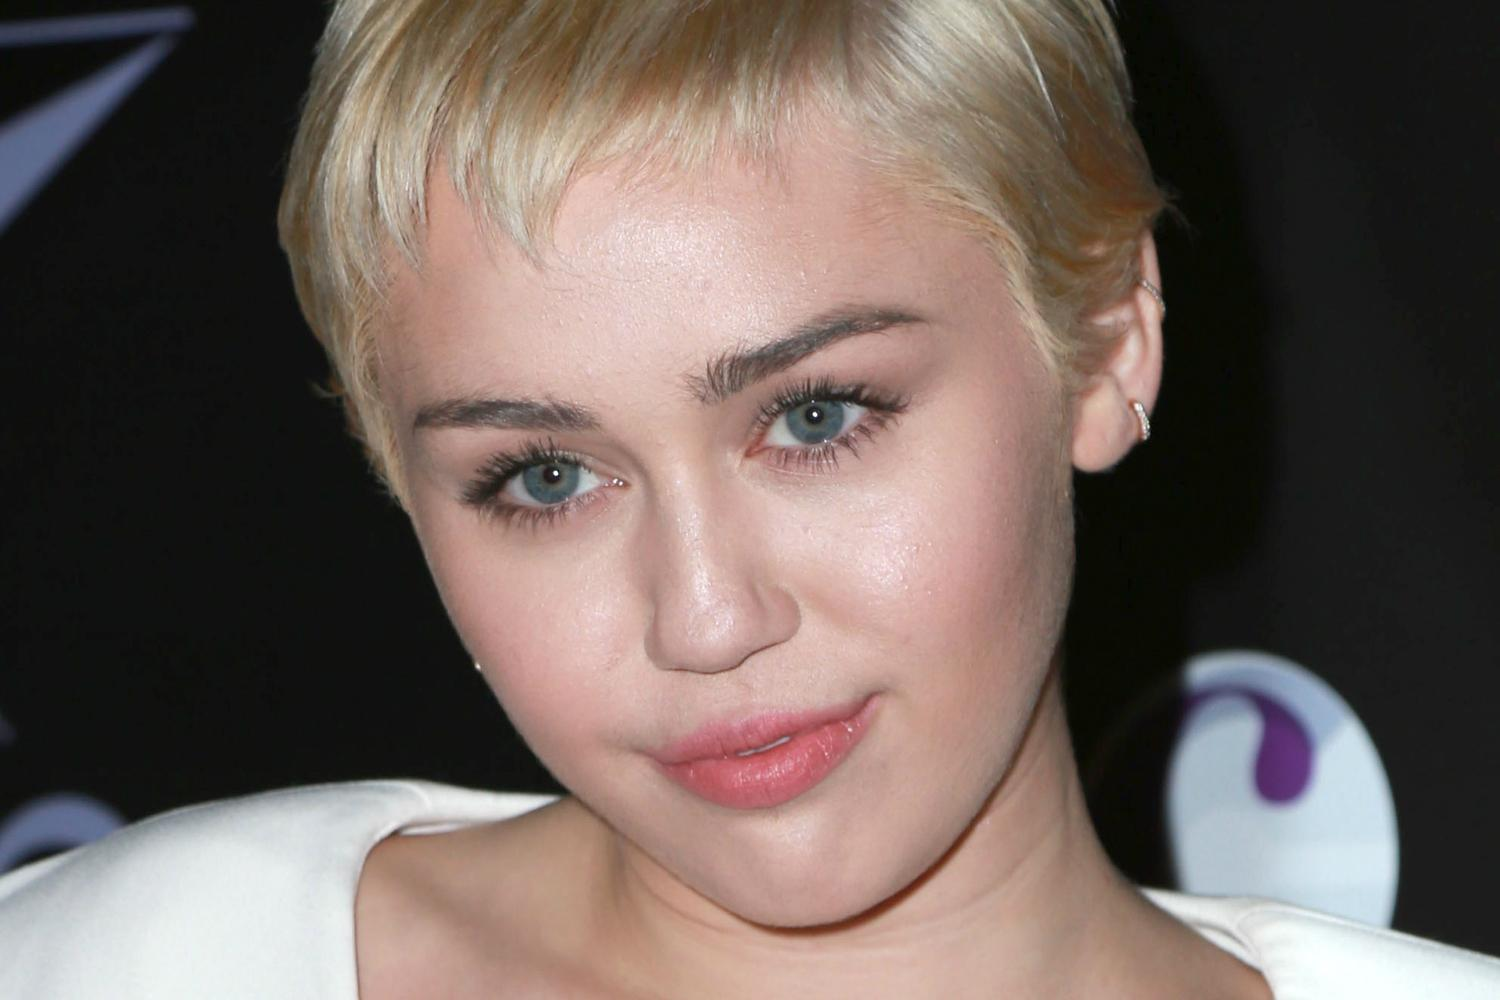 Miley Cyrus HD free wallpaper,stars and gallery,new photos archive